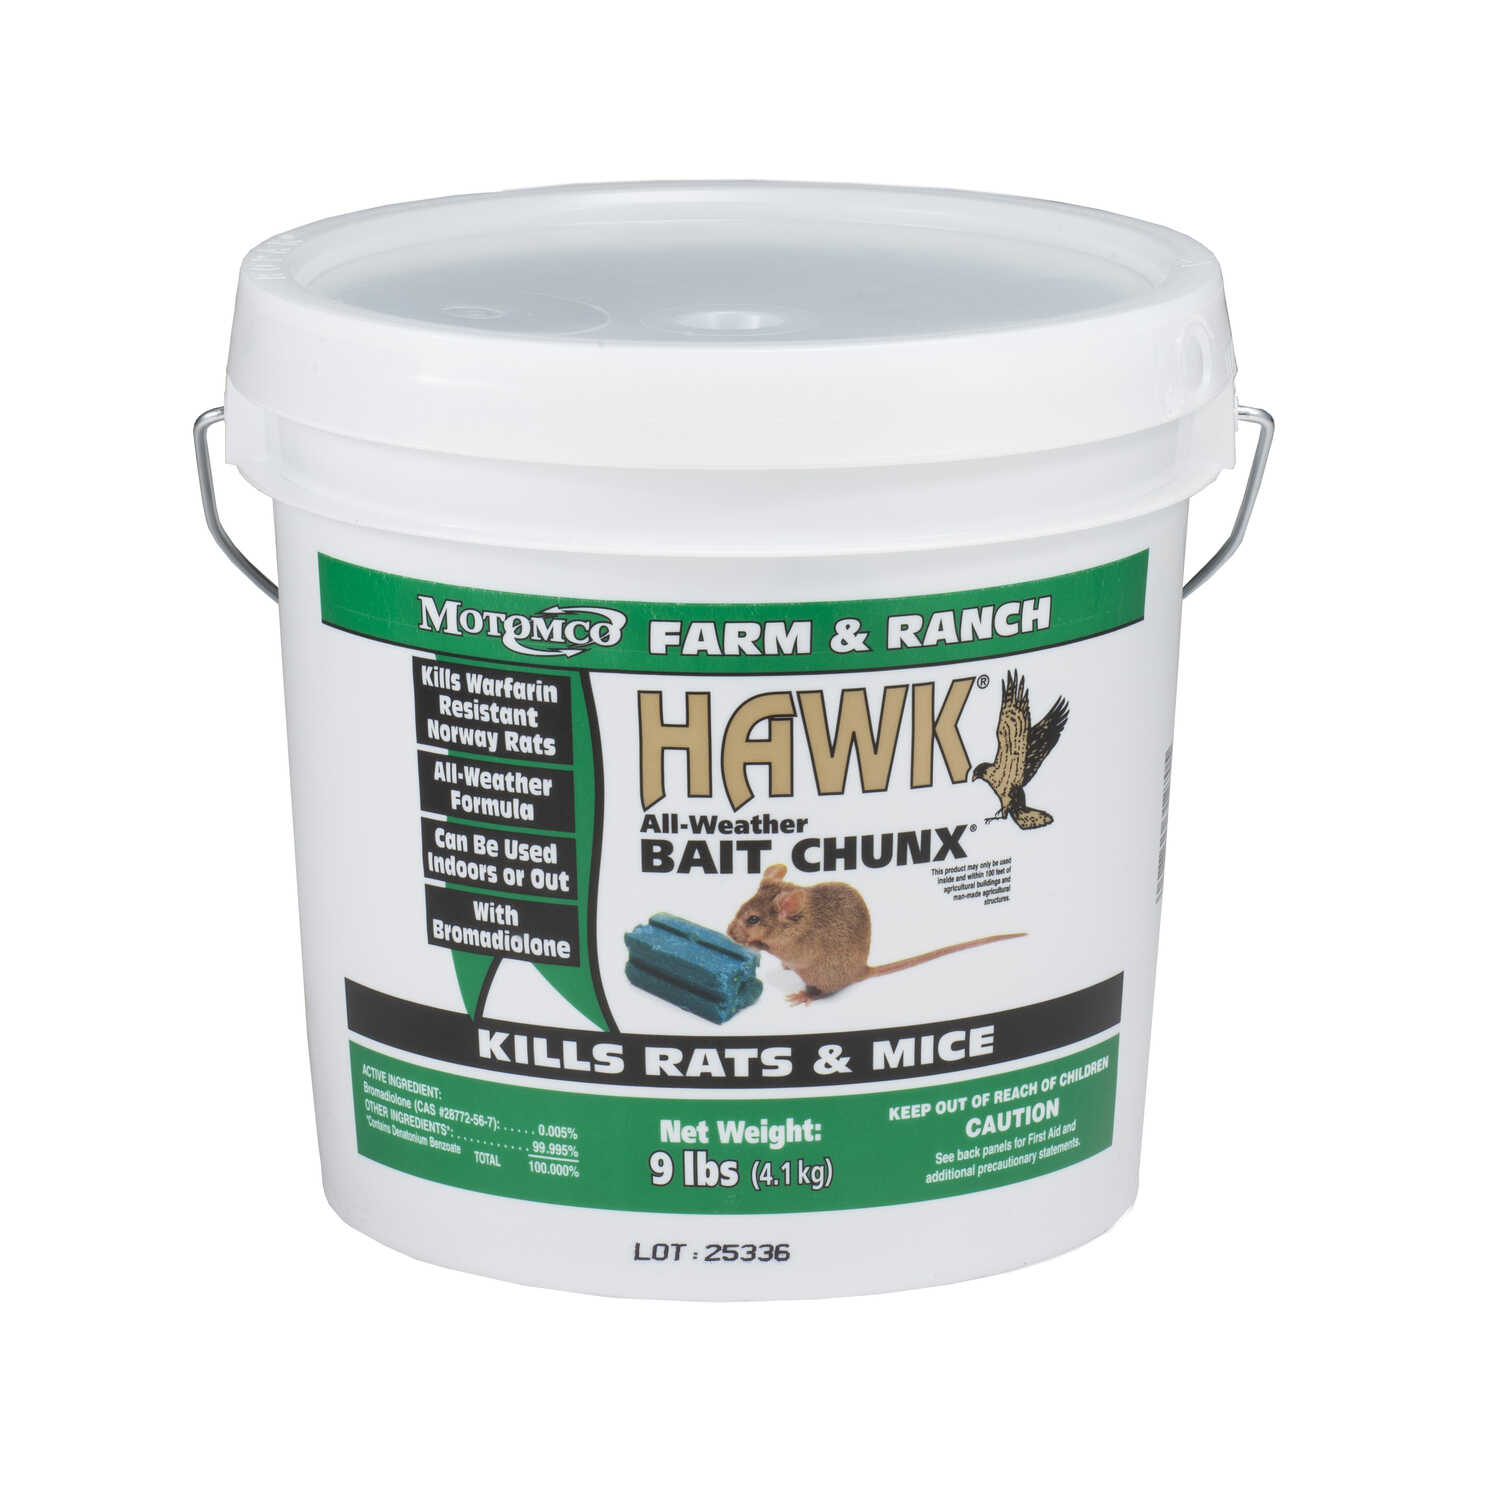 Motomco  Hawk  For Mice/Rats Pest Control  9